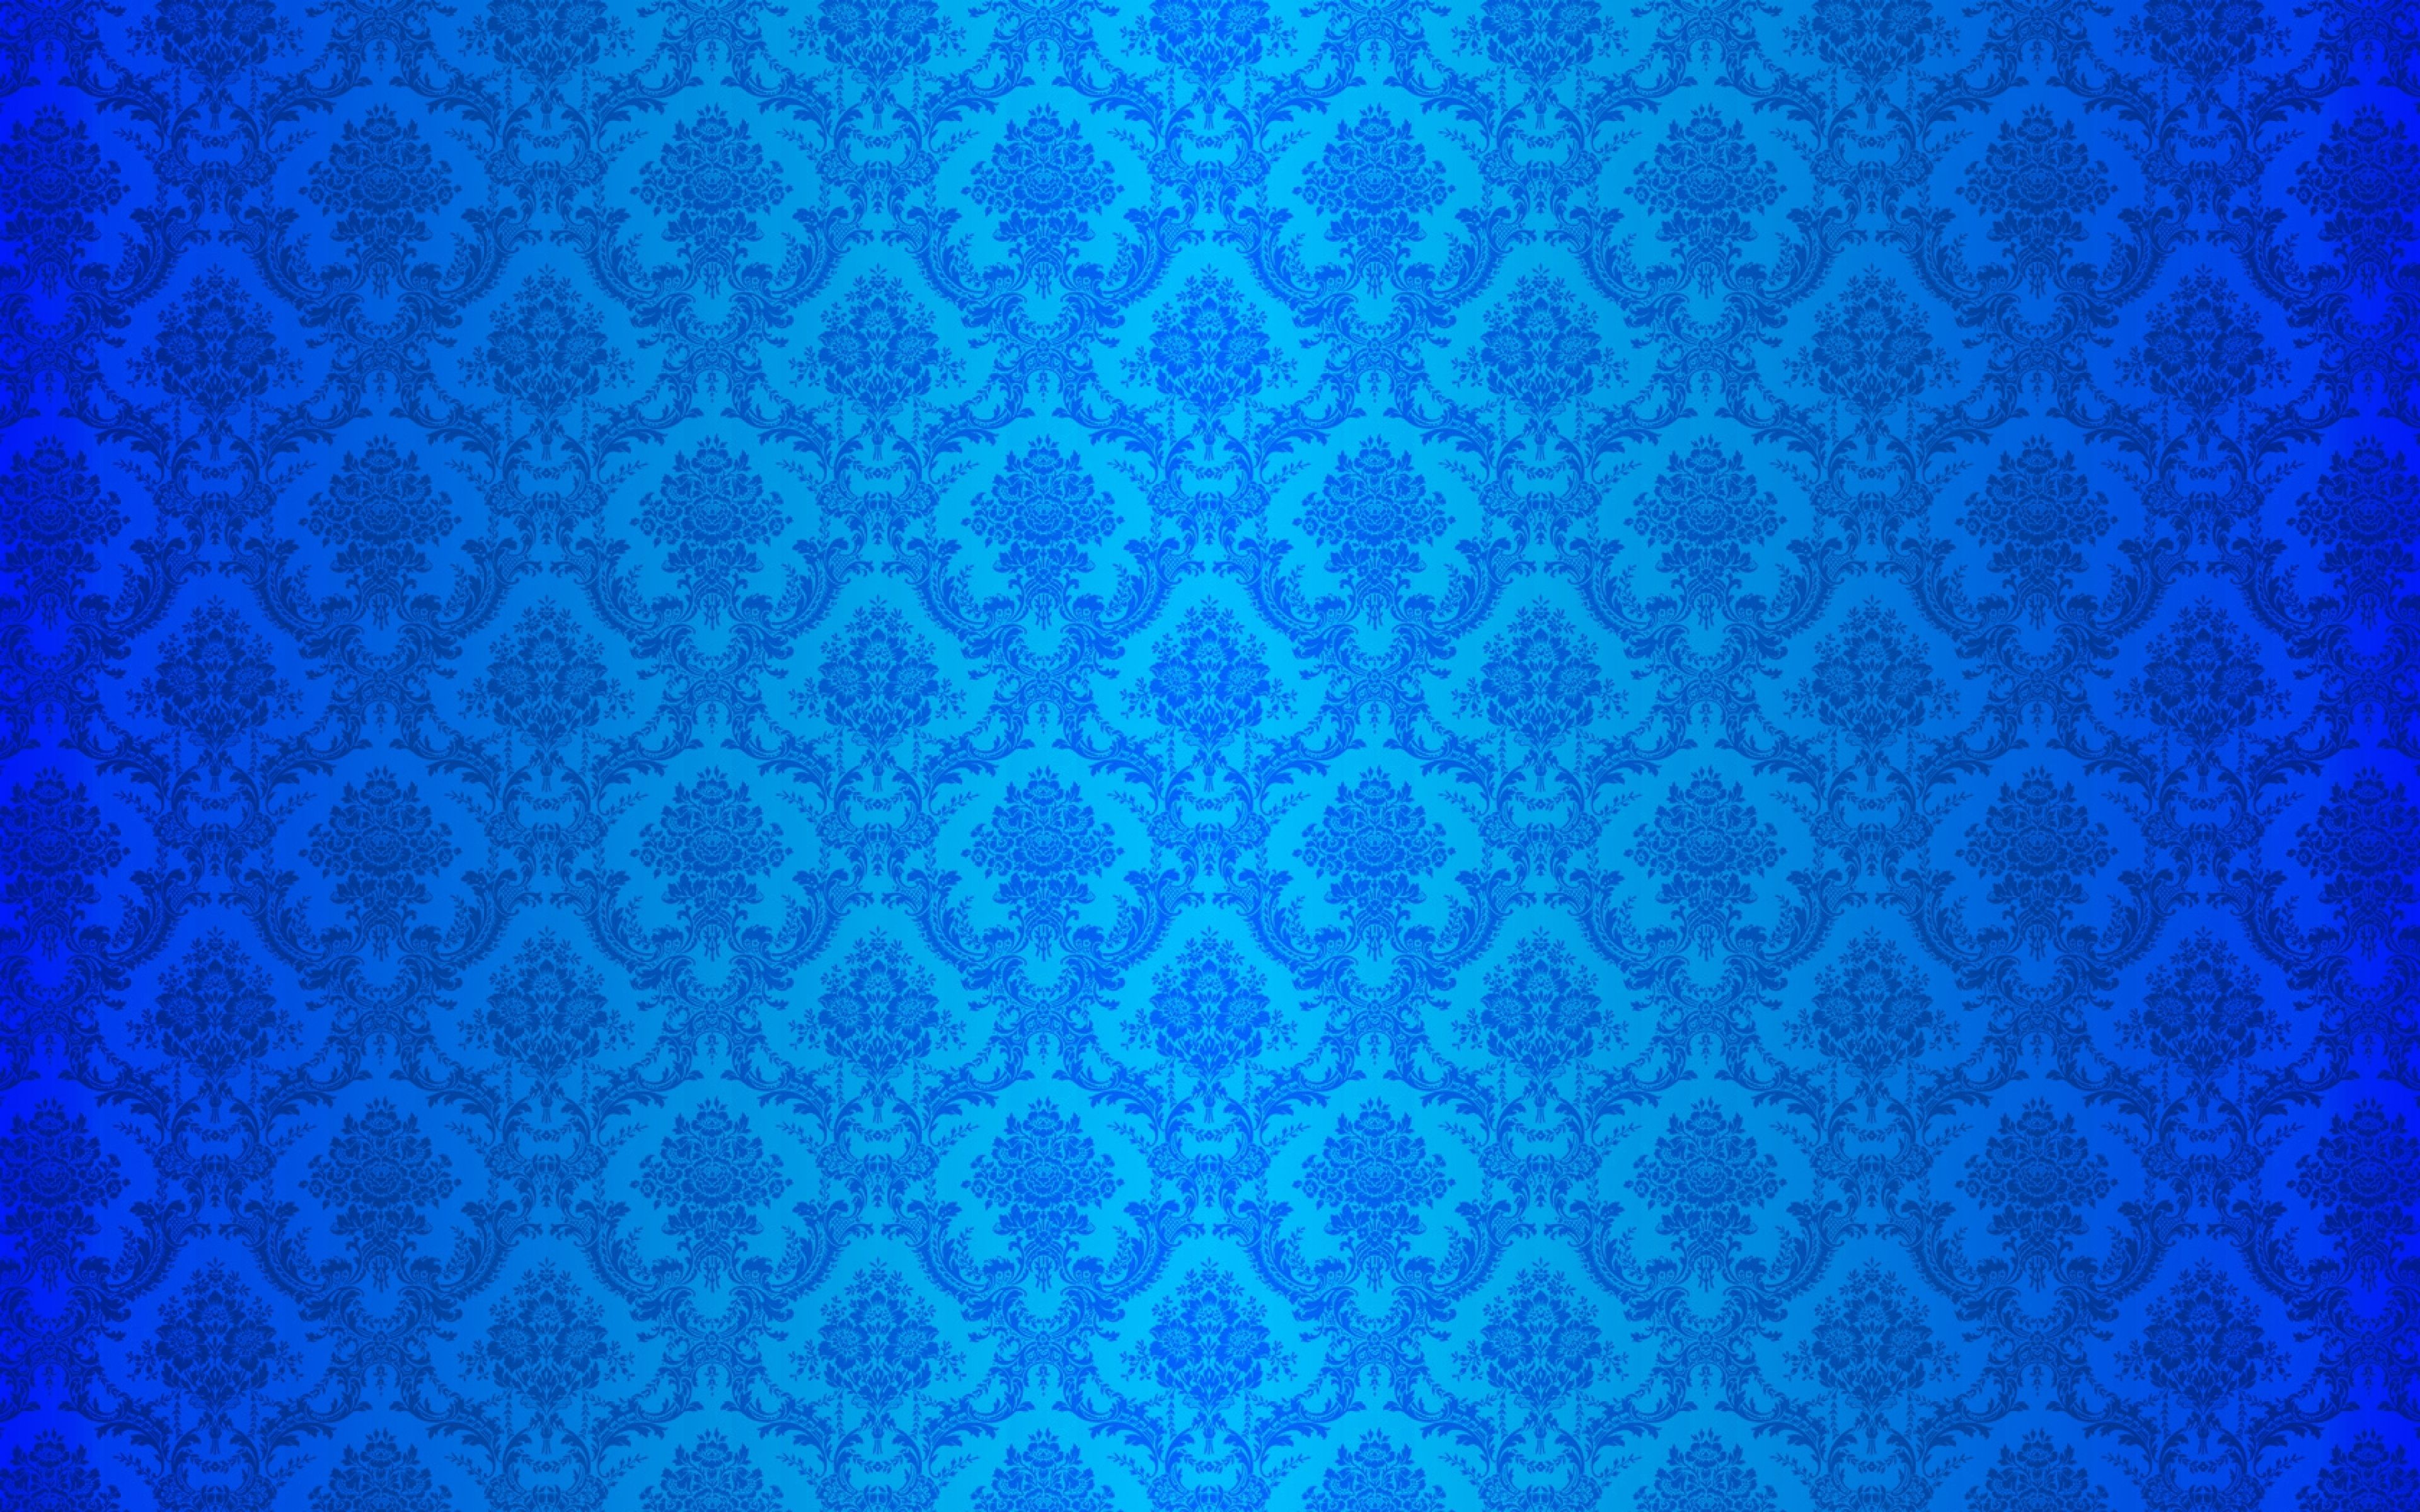 Hd Background Pattern Background Pattern Hdwplan Regarding Hd Background Pattern 3840 X Blue Background Wallpapers Carbon Fiber Wallpaper Blue Wallpapers